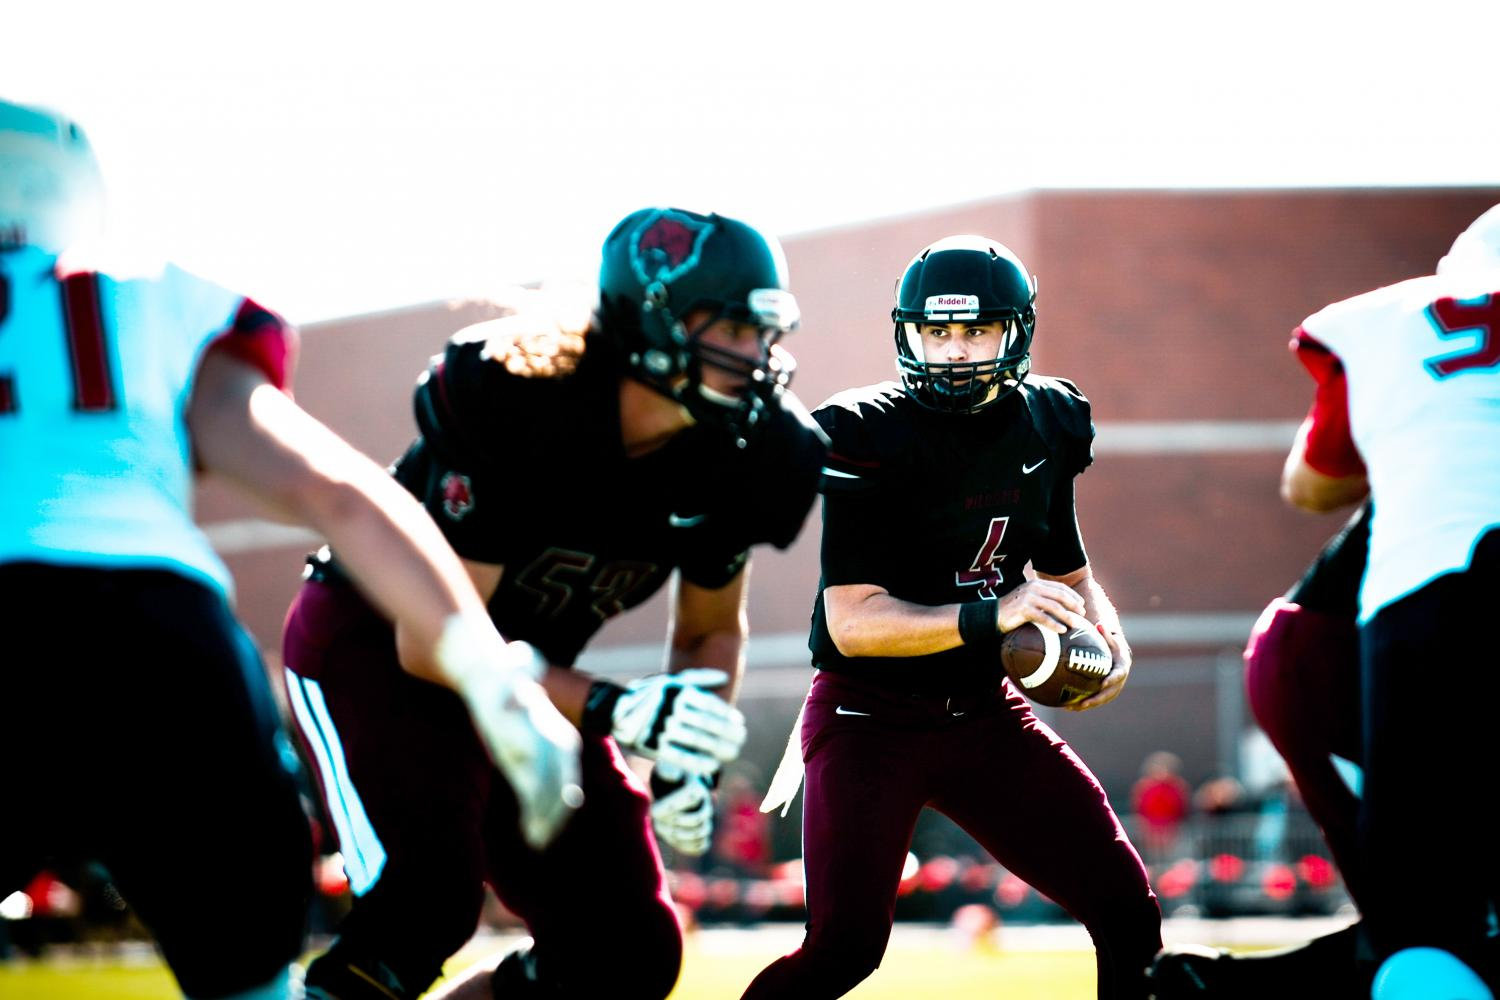 Reilly Hennessey considers his next move during the Sept. 30 game against Simon Fraser. CWU won the game 62-0.